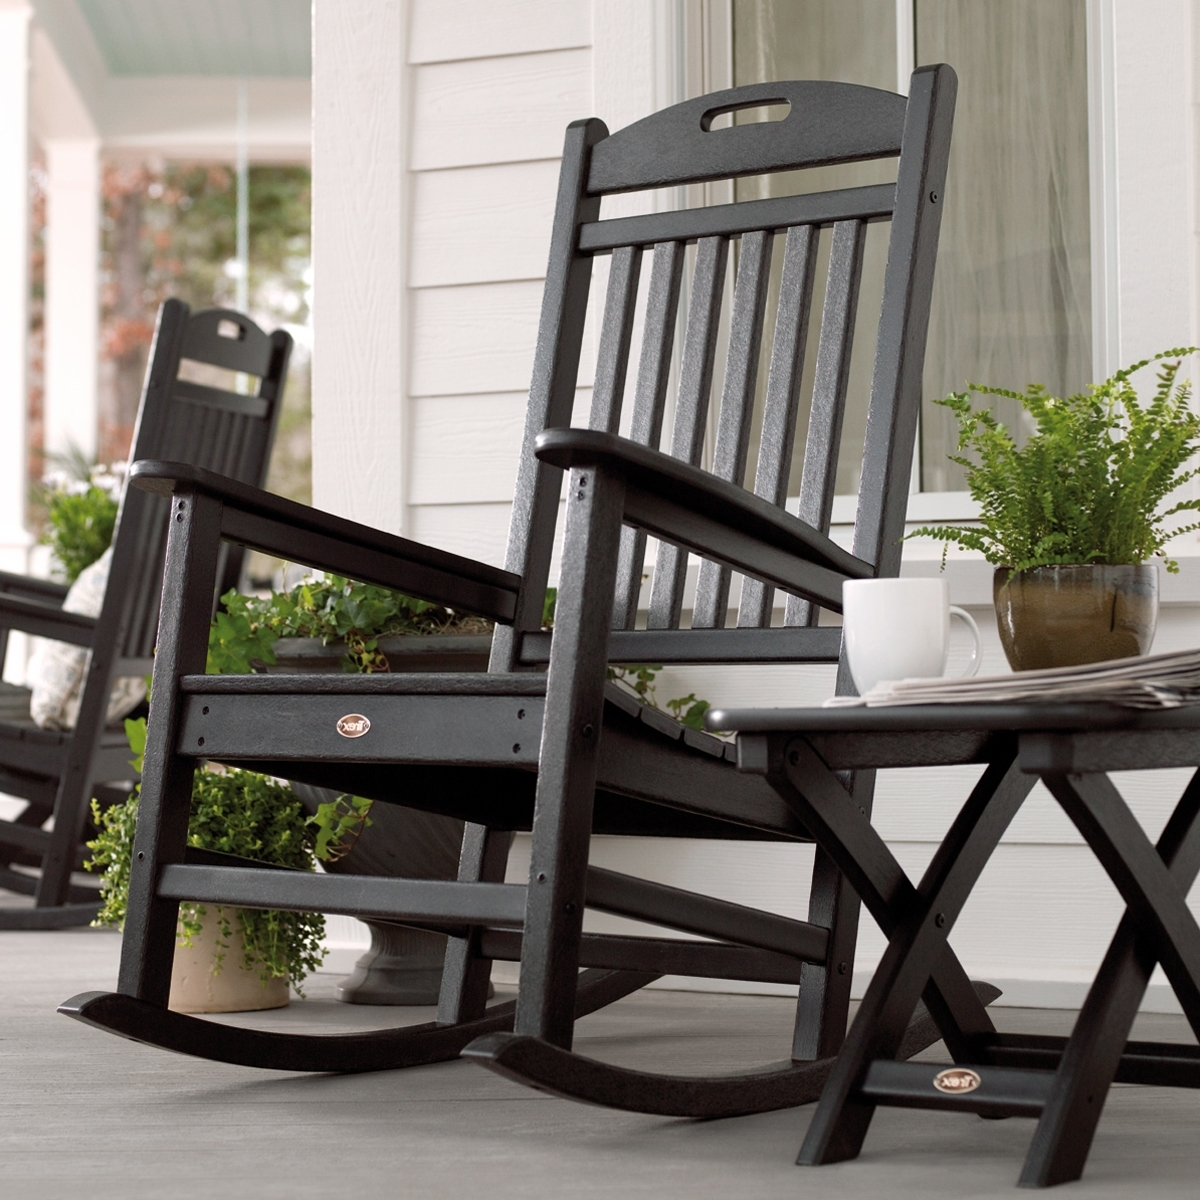 Trex Outdoor Furniture Txr100 Yacht Club Outdoor Rocking Chair With Regard To Most Current Unique Outdoor Rocking Chairs (View 6 of 20)